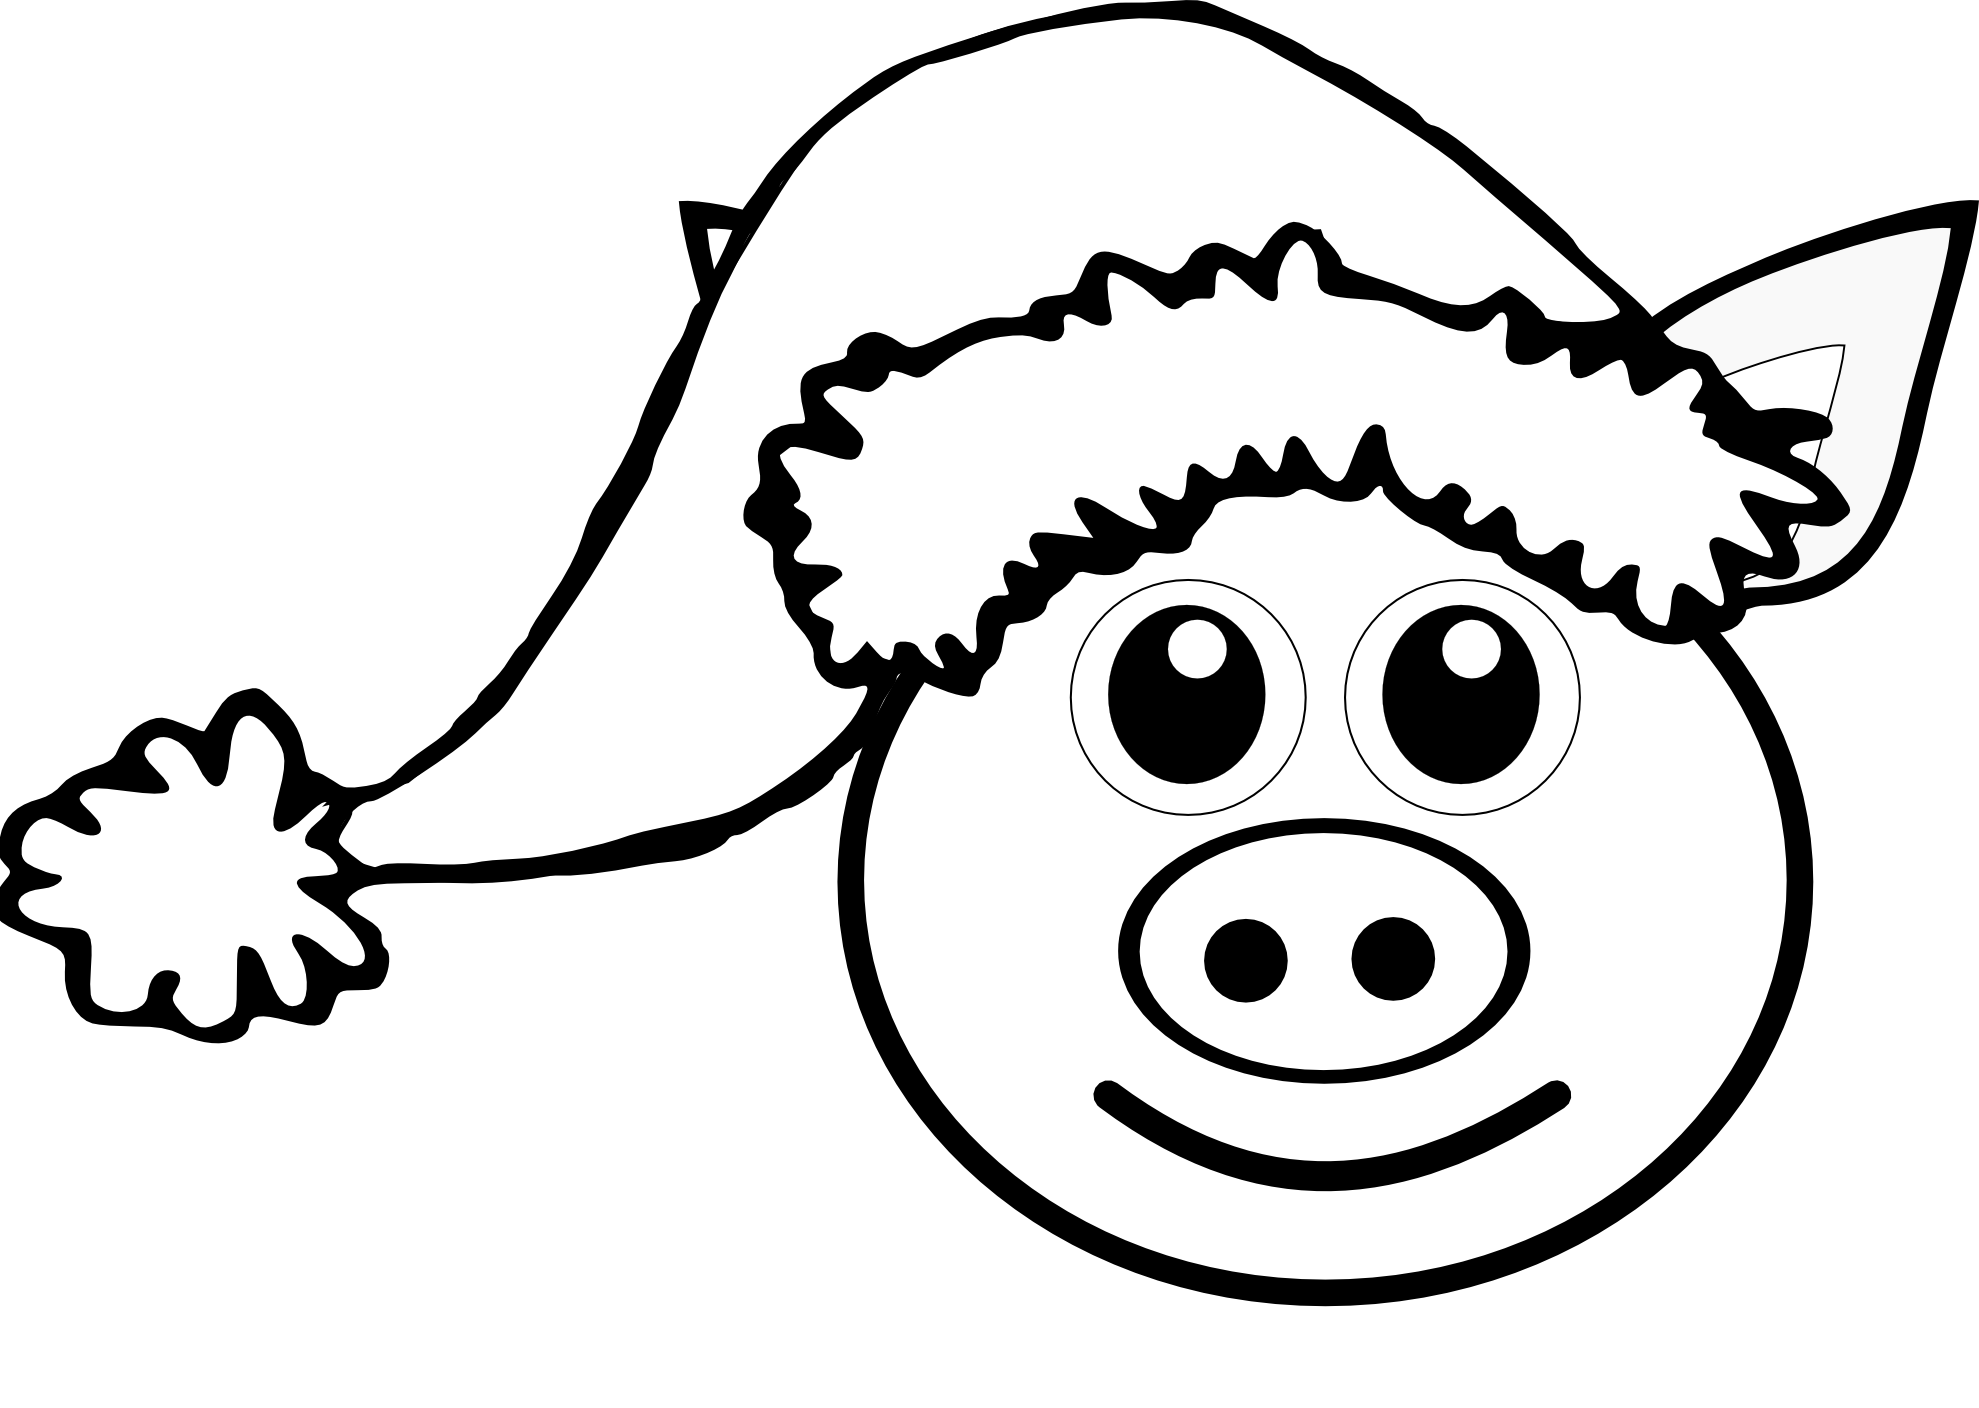 Cute Pig Face Clipart | Free download best Cute Pig Face Clipart on ...